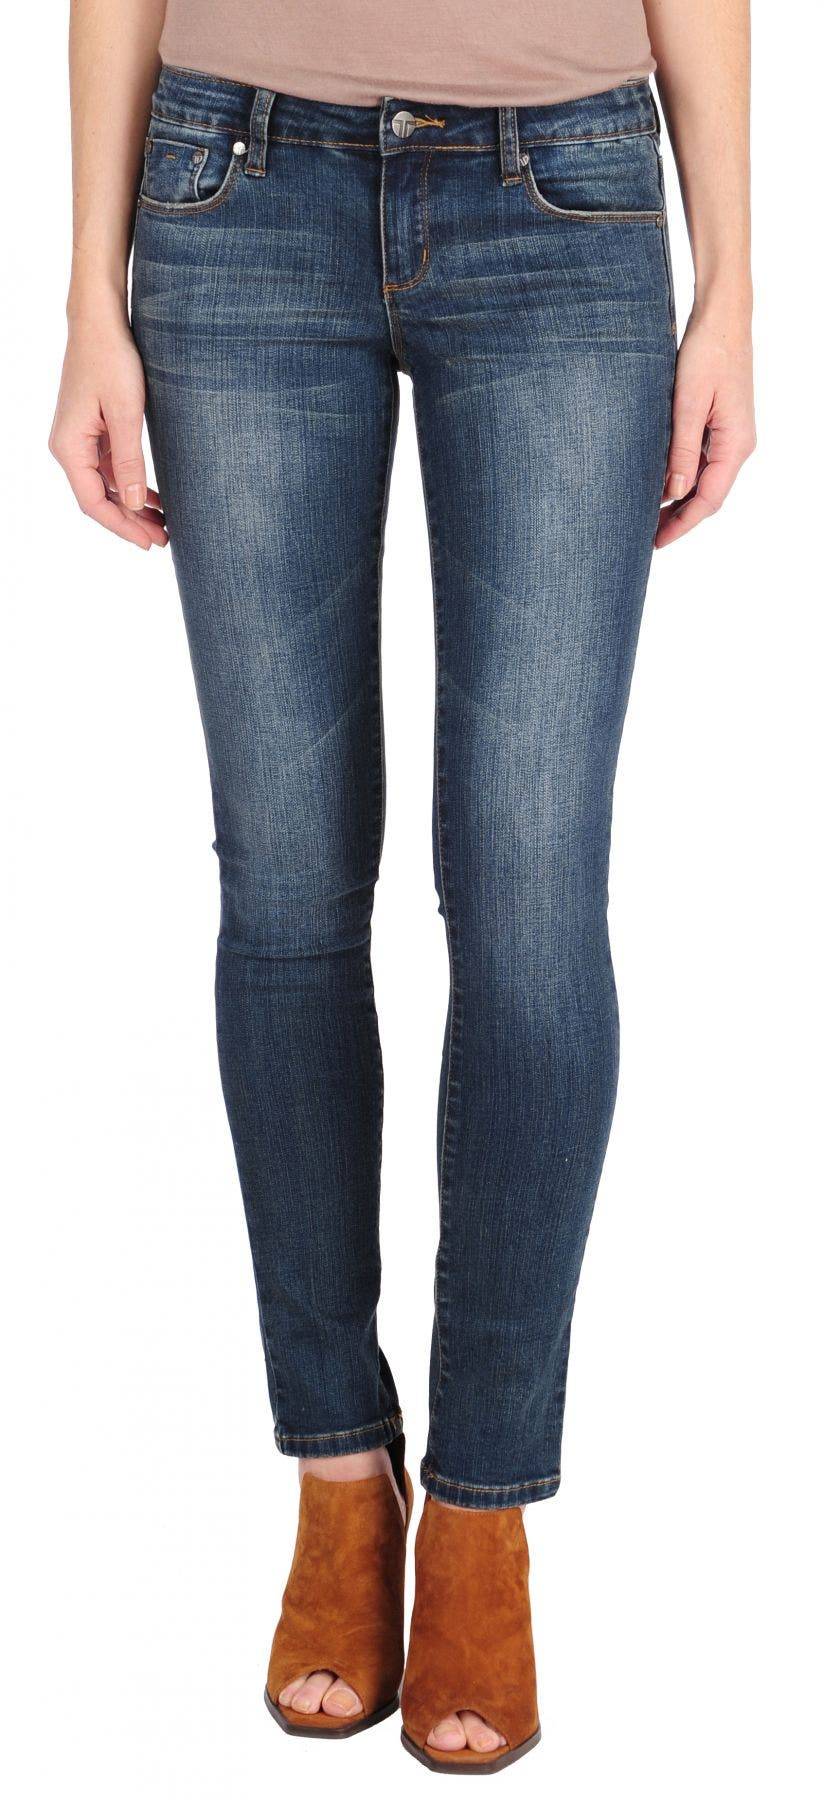 Tractr Jeans Mid-Rise Skinny